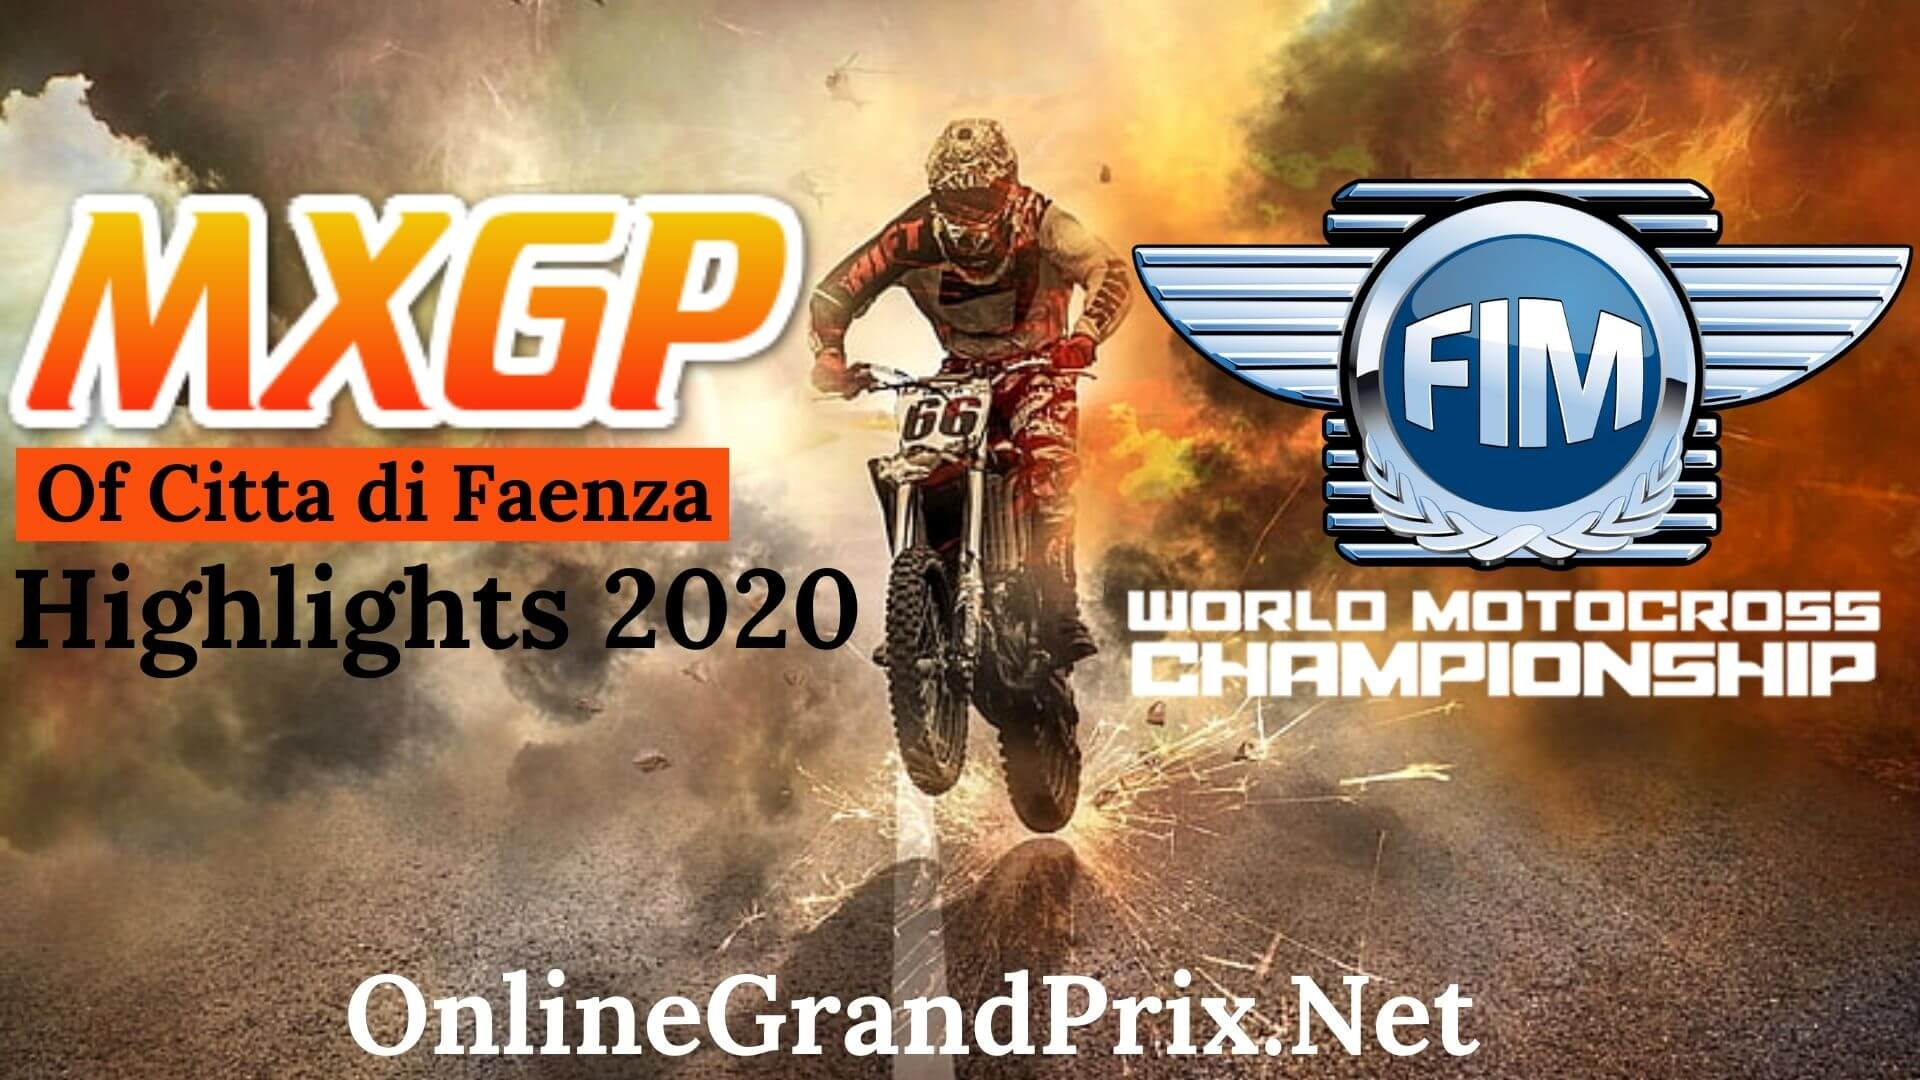 MXGP of Citta di Faenza Highlights 2020